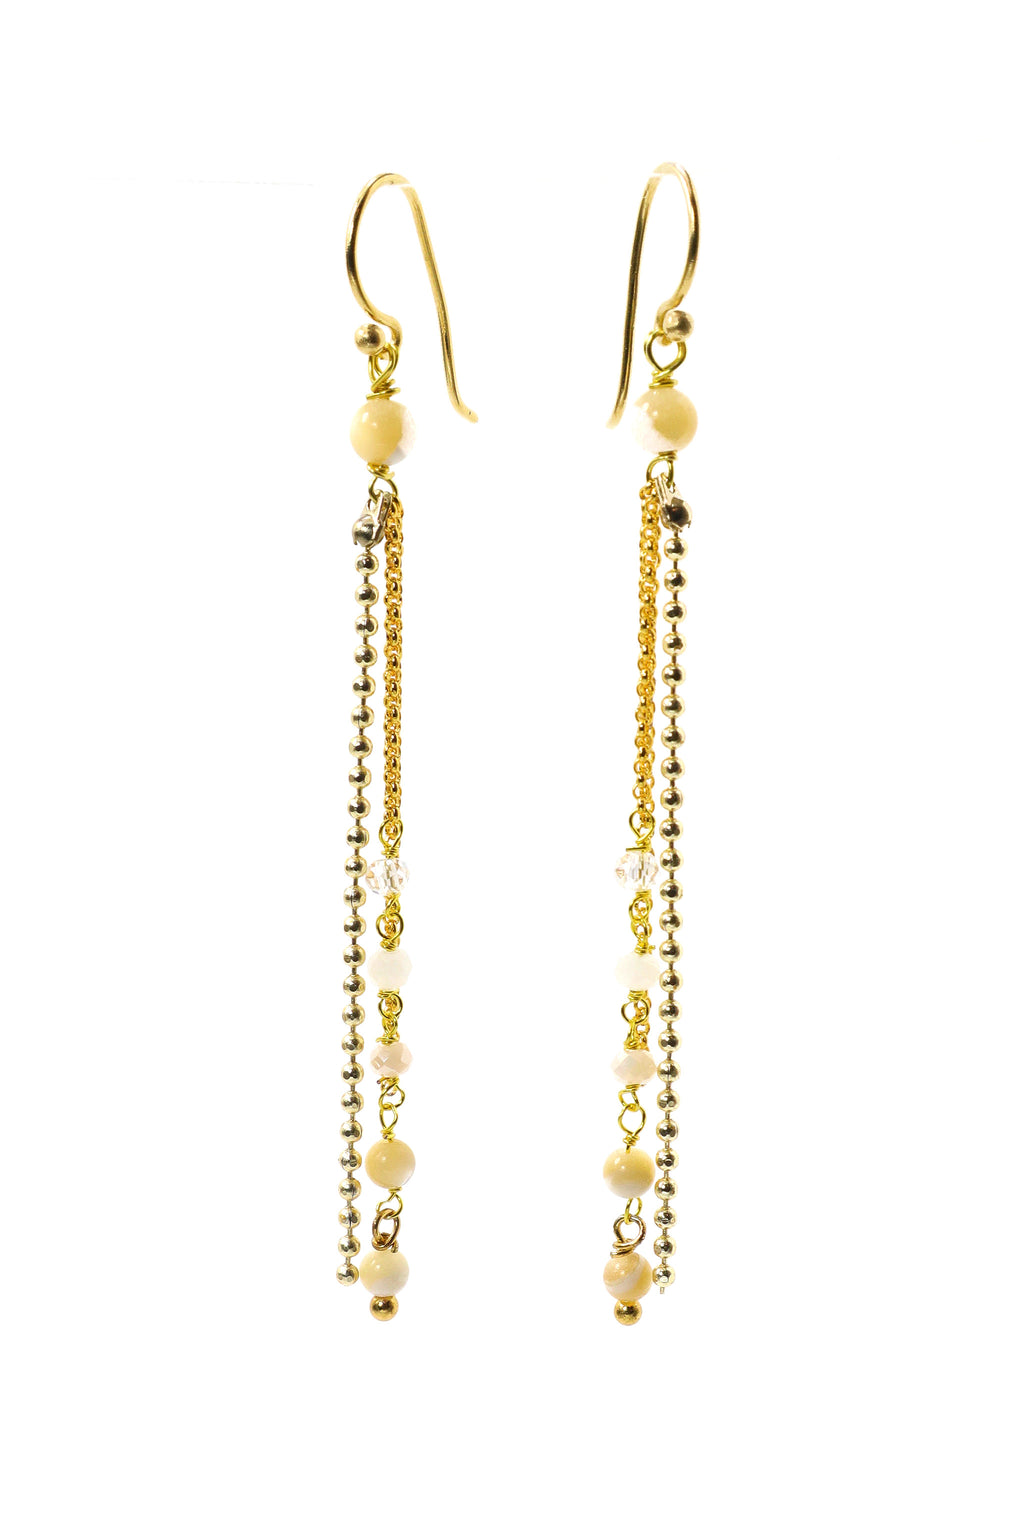 These earrings are a double strand of rosary style gemstones and gold chain. They feature crystal quartz, white quartz and agate gemstones all wired in a graduated tone of light to dark. These earrings are handmade with love in Thailand. This is a Fairtrade Product.